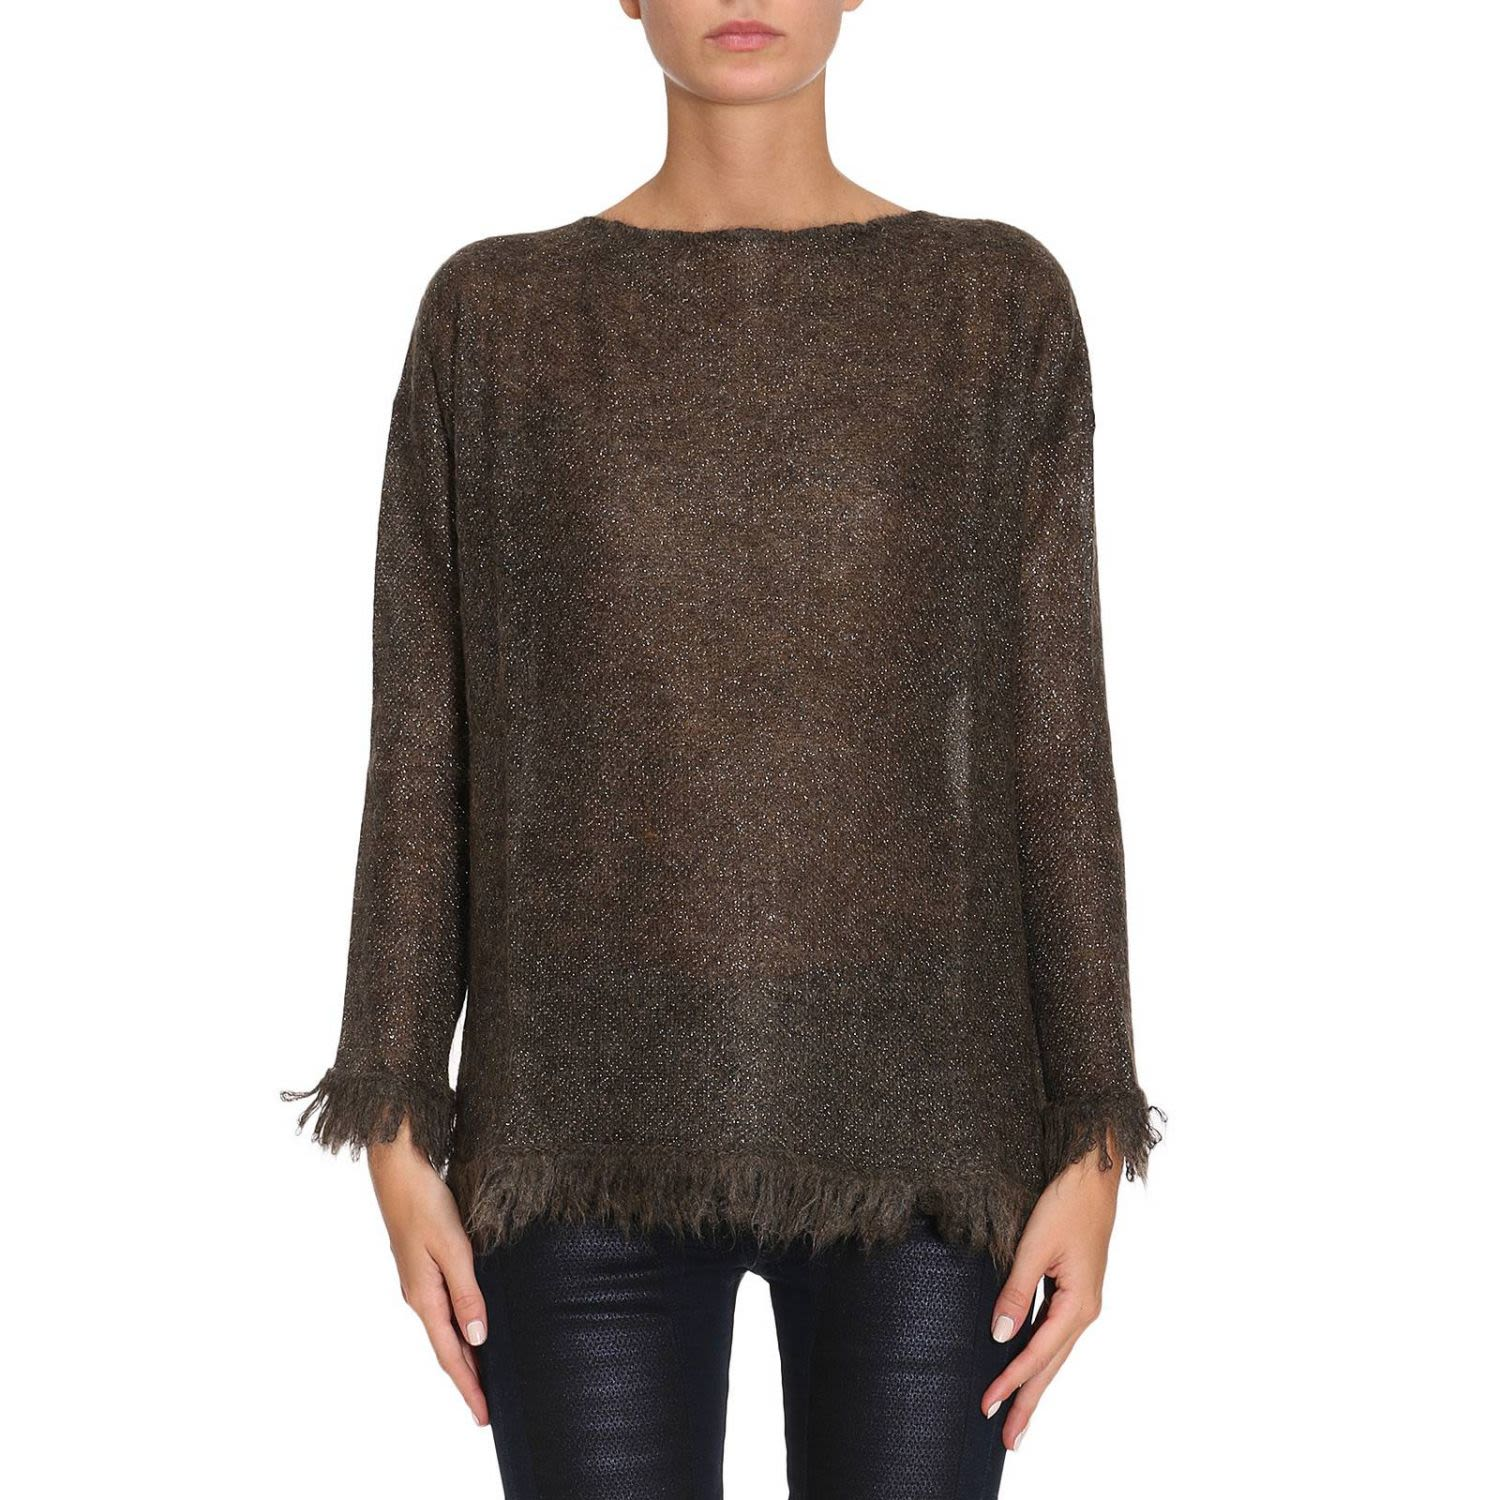 Sweater Sweater Women D.exterior